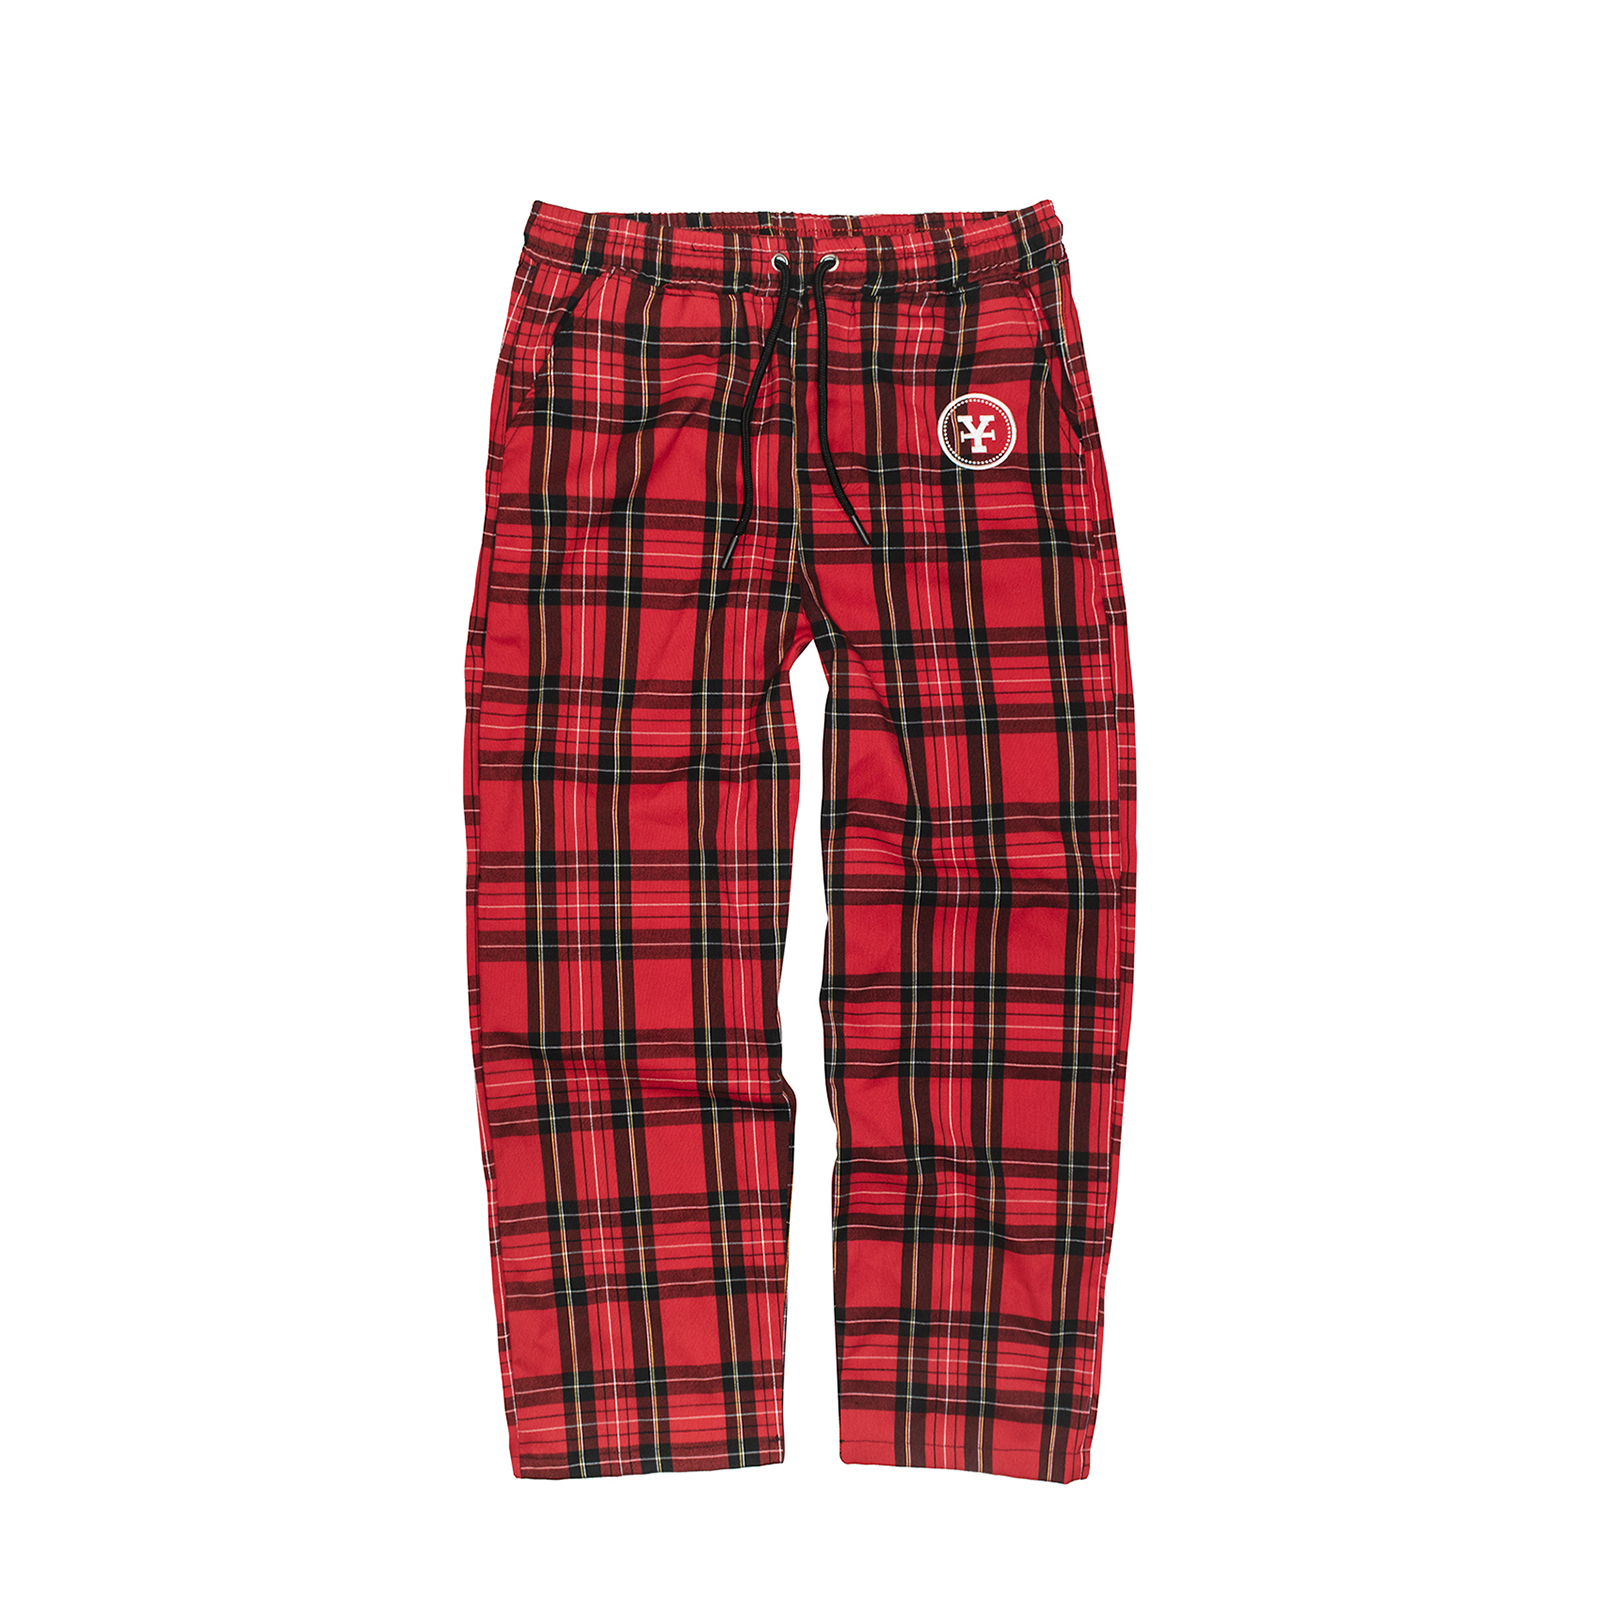 Plaid Pants In Bred